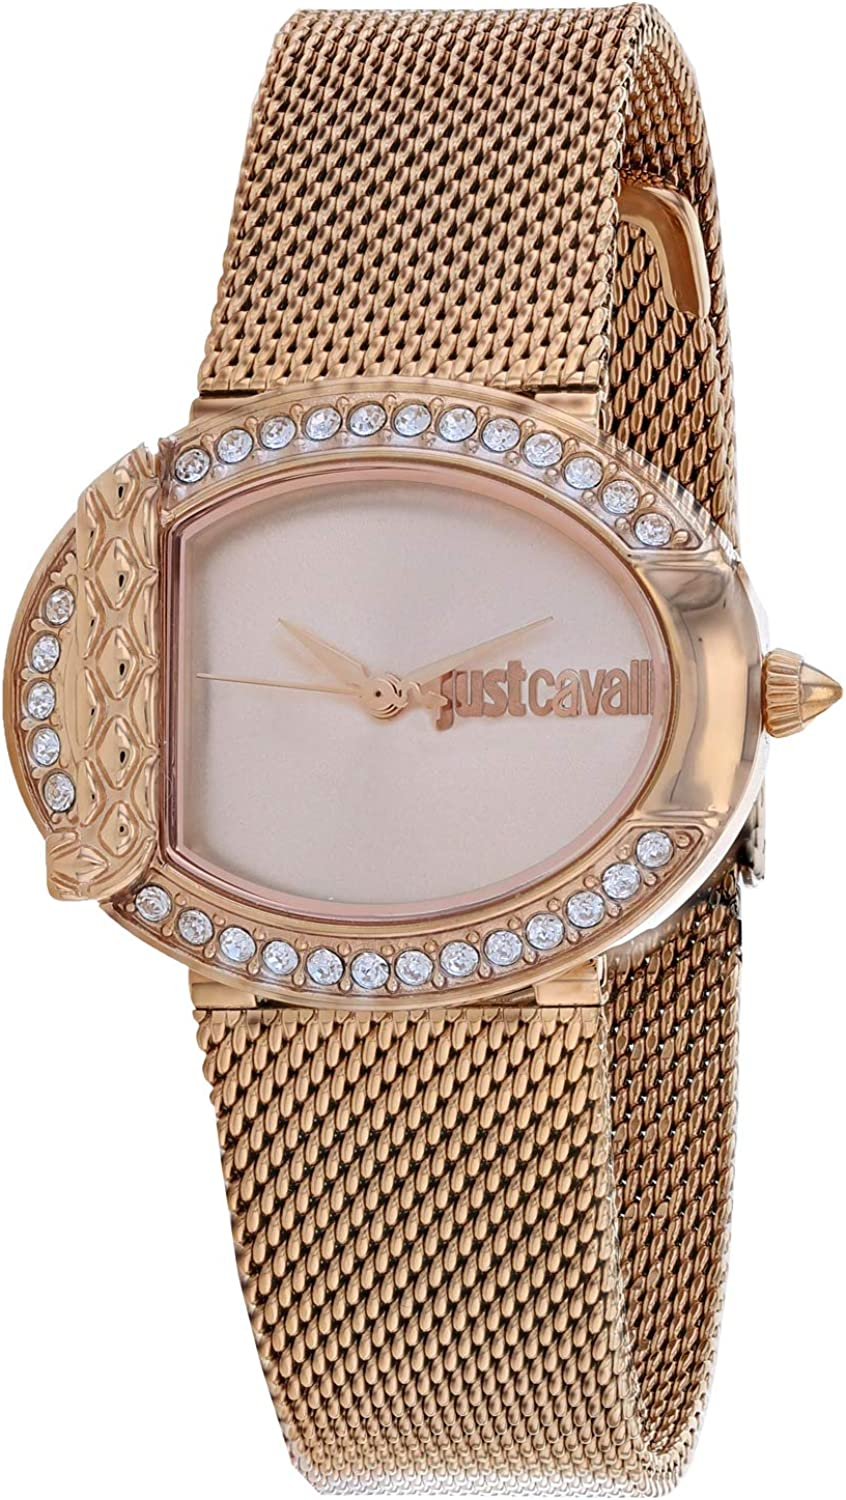 Just Cavalli Women's Quartz Watch Strap In stock Stainless Steel Ro Selling and selling with